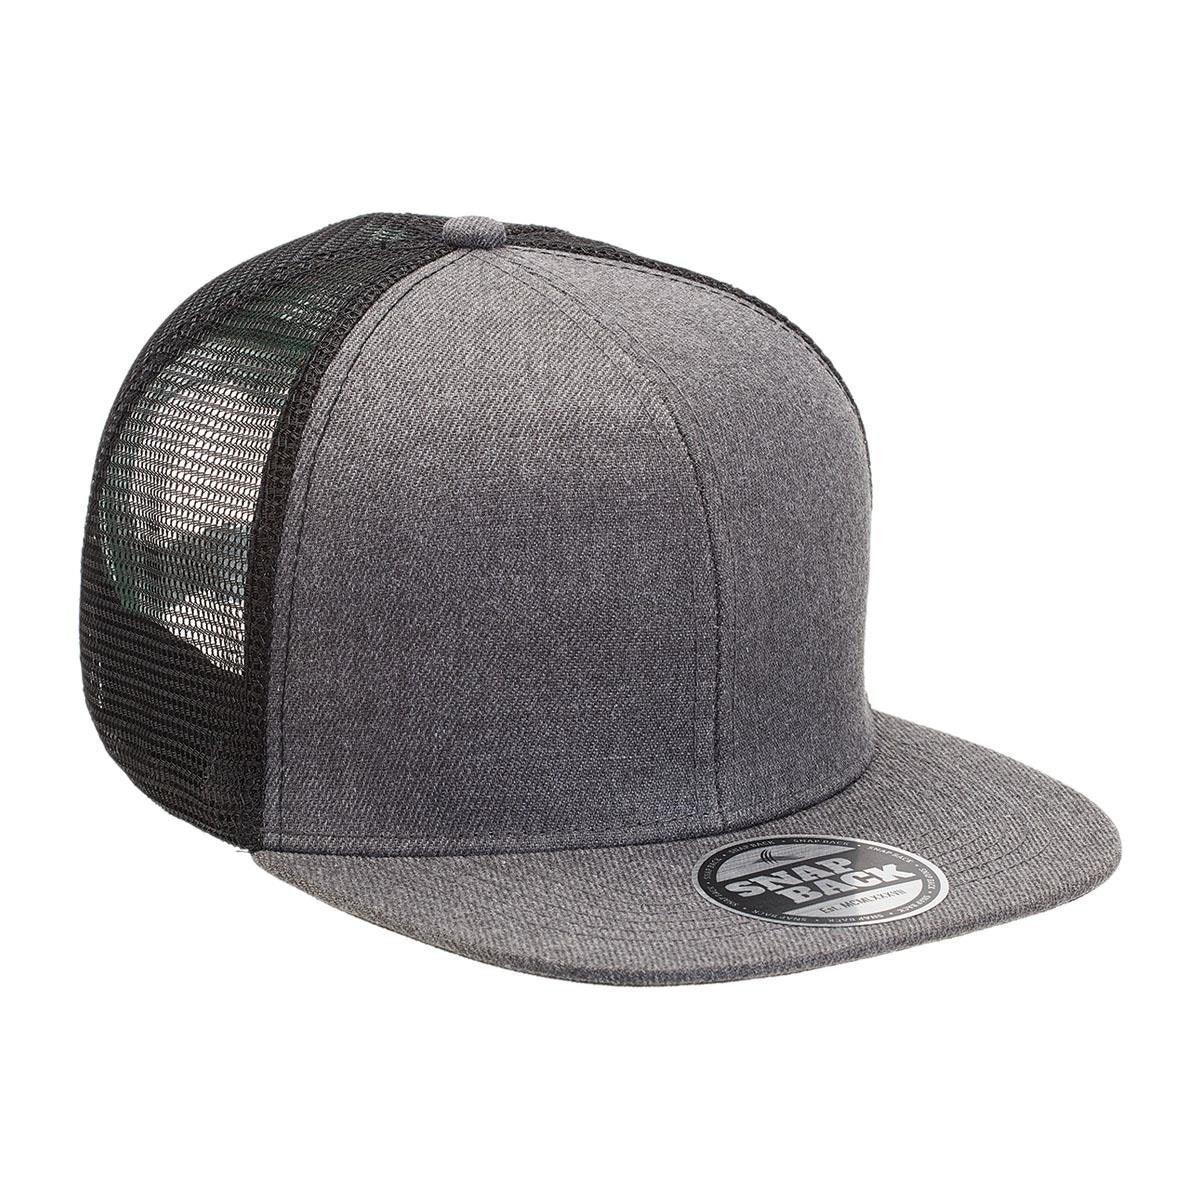 Heathered Flat Peak Trucker Cap